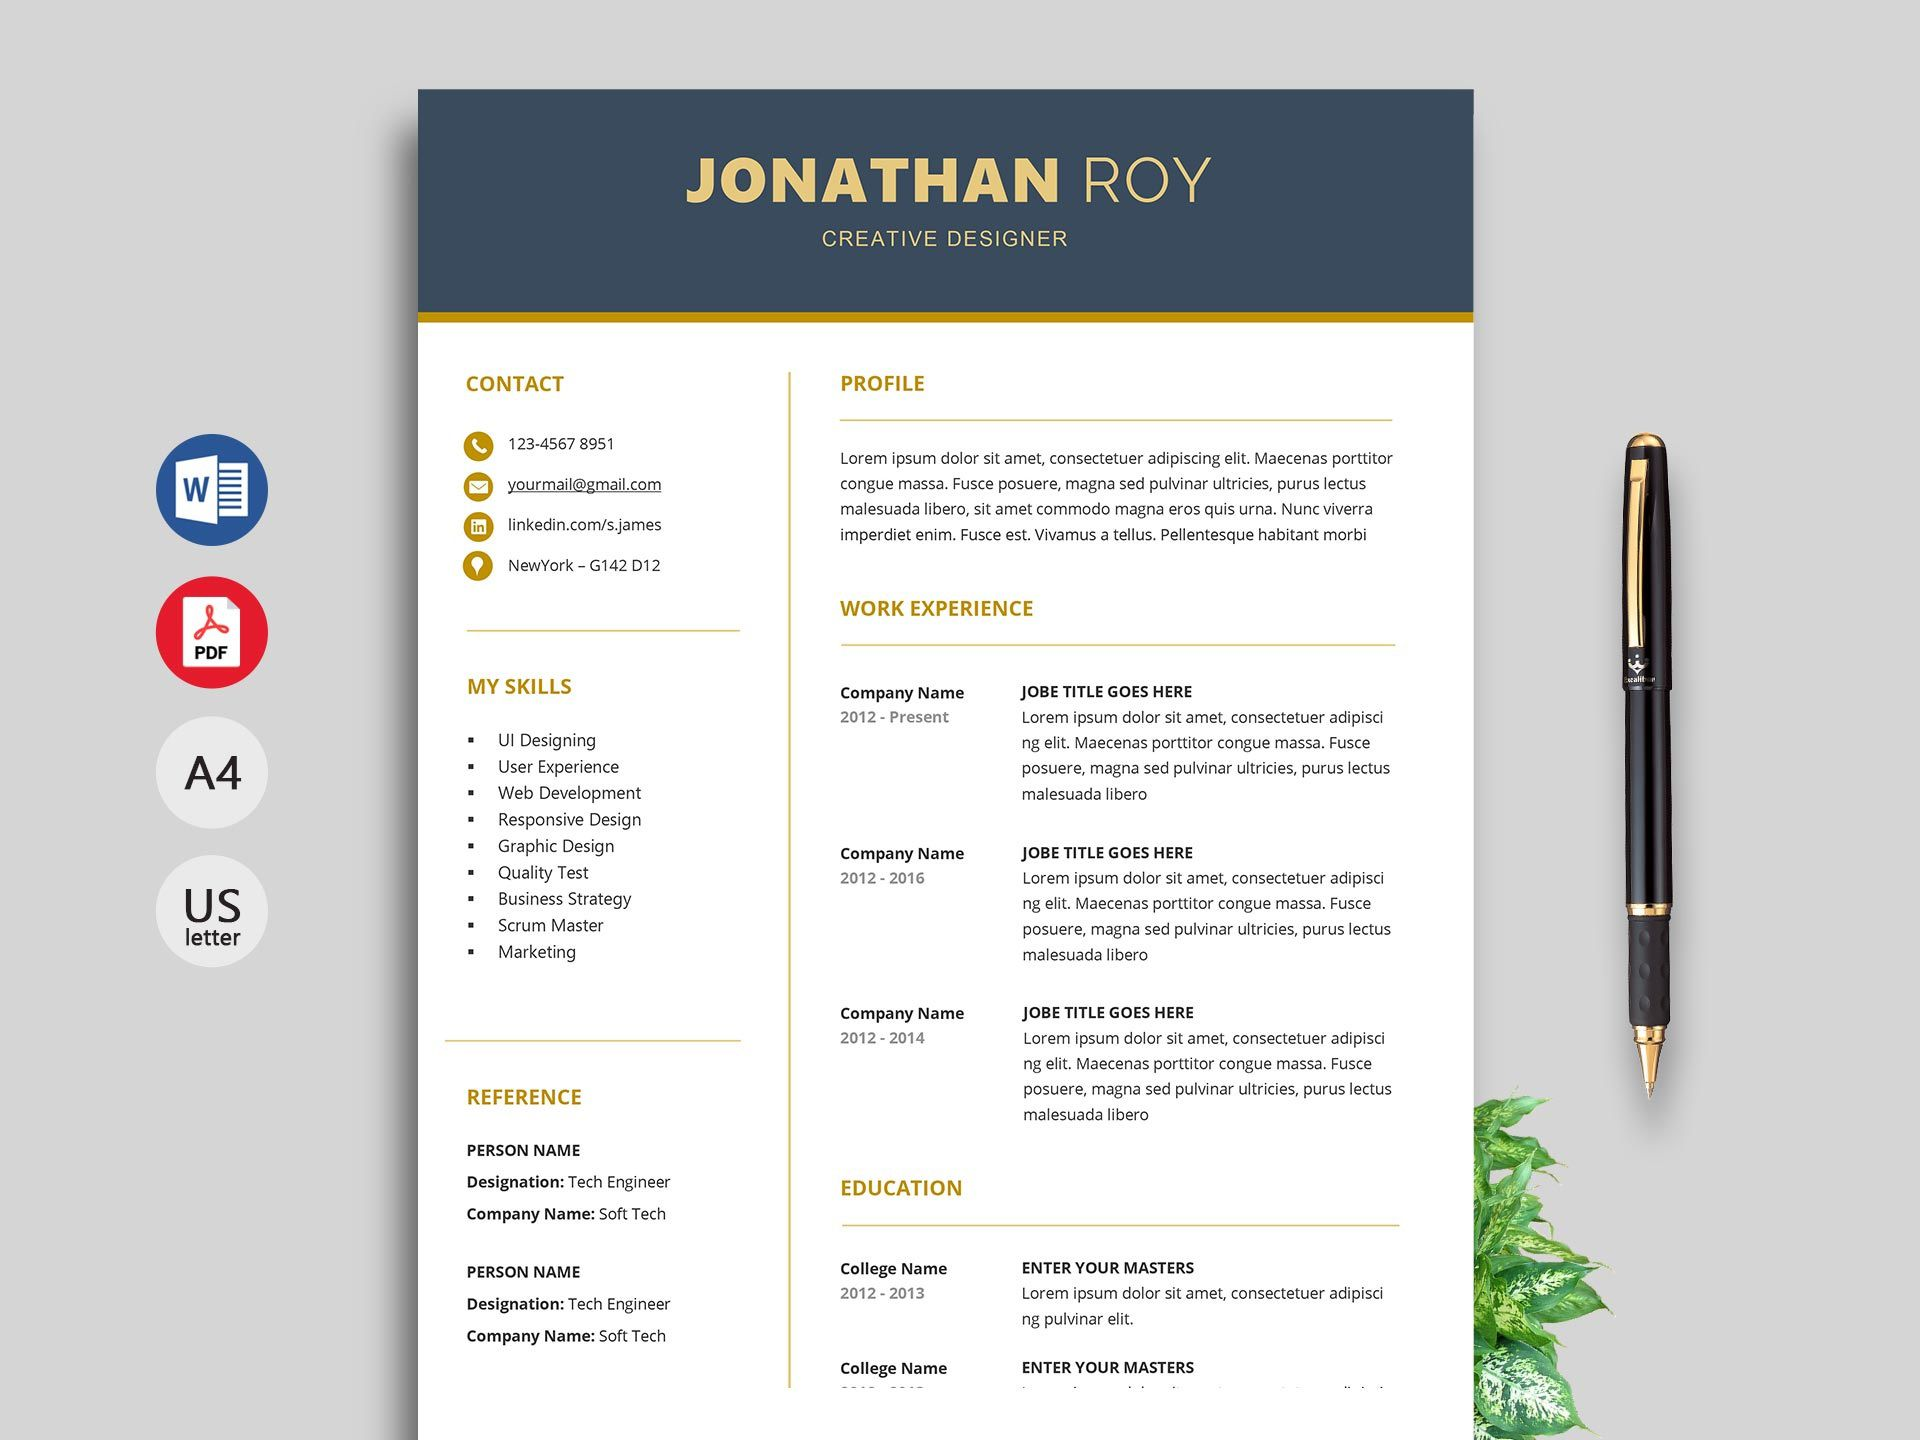 Word Resume Template 2010 from www.addictionary.org